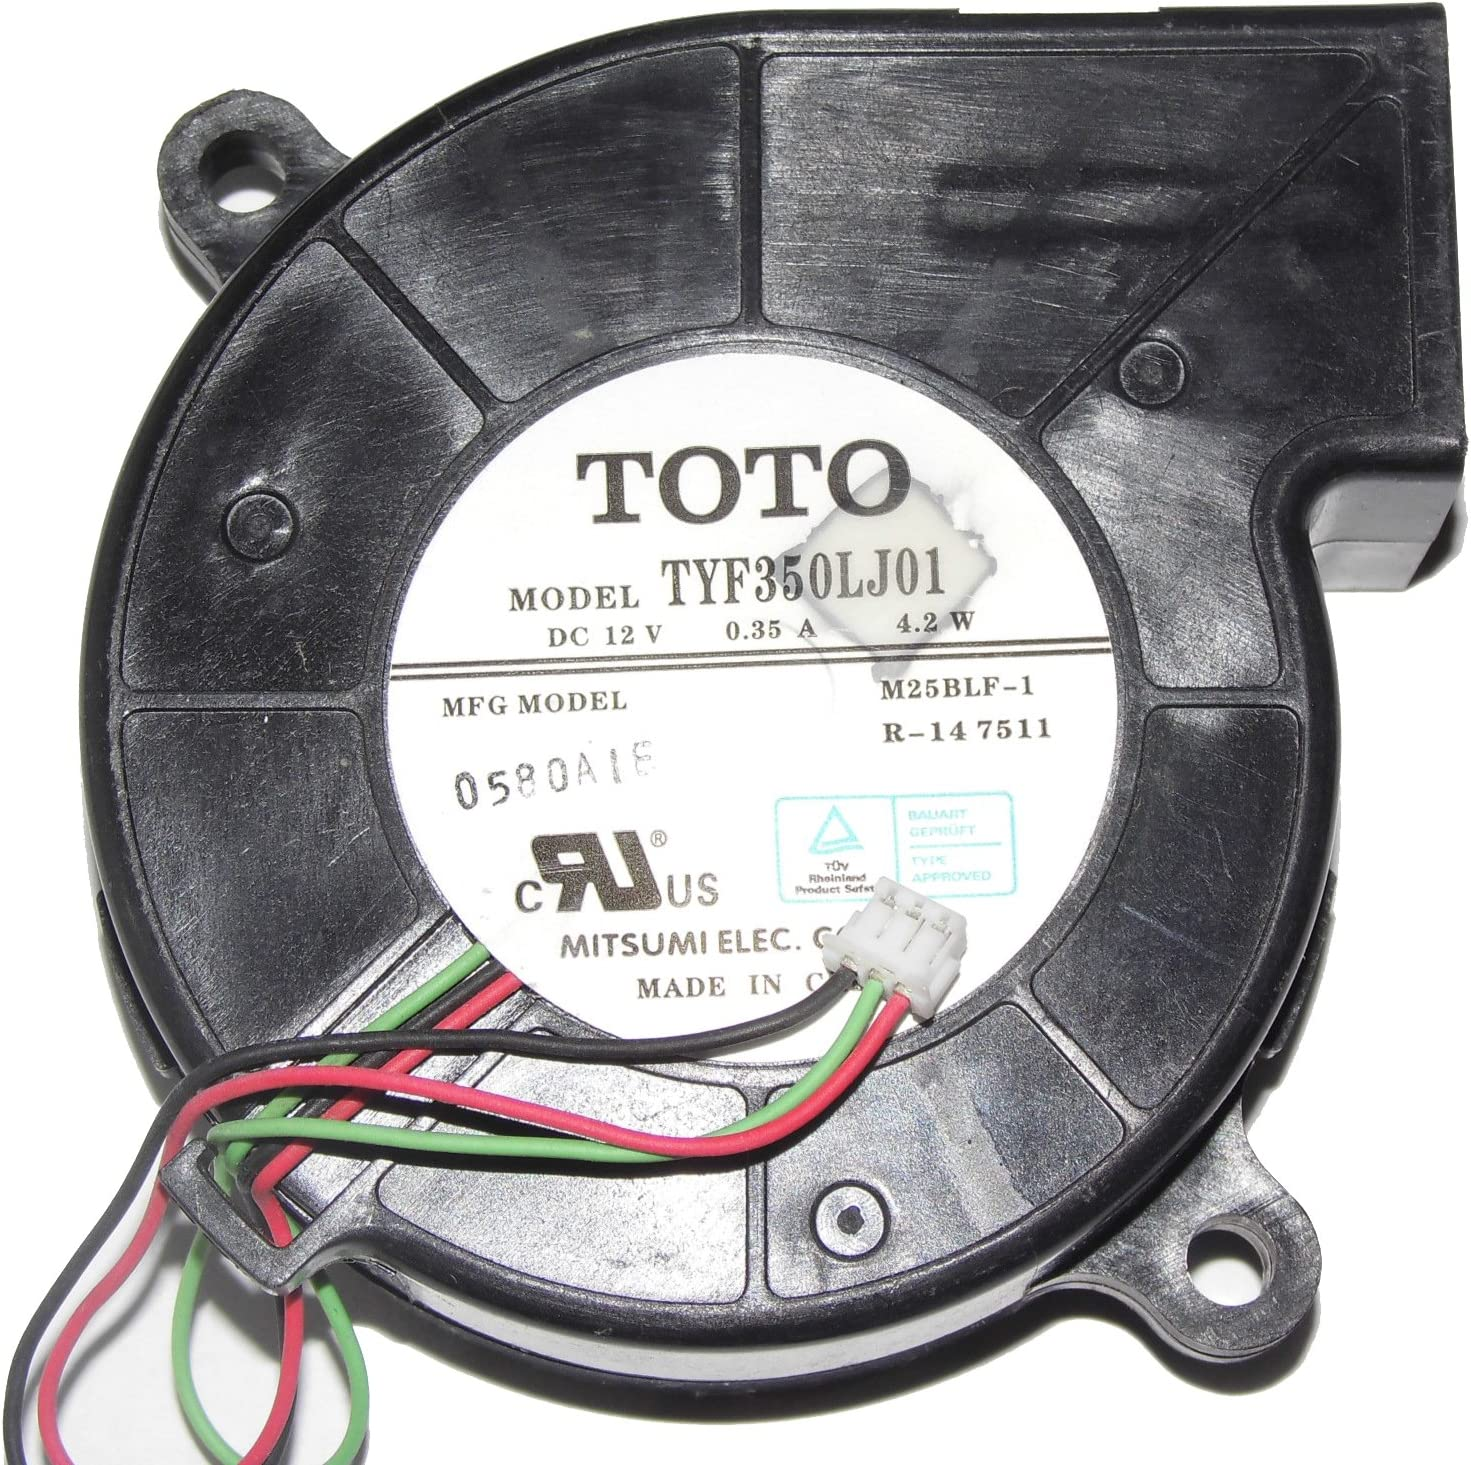 TOTO TYF350LJ01 M25BLF-1 12V 0.35A 4.2W 3Wire Cooling Fan